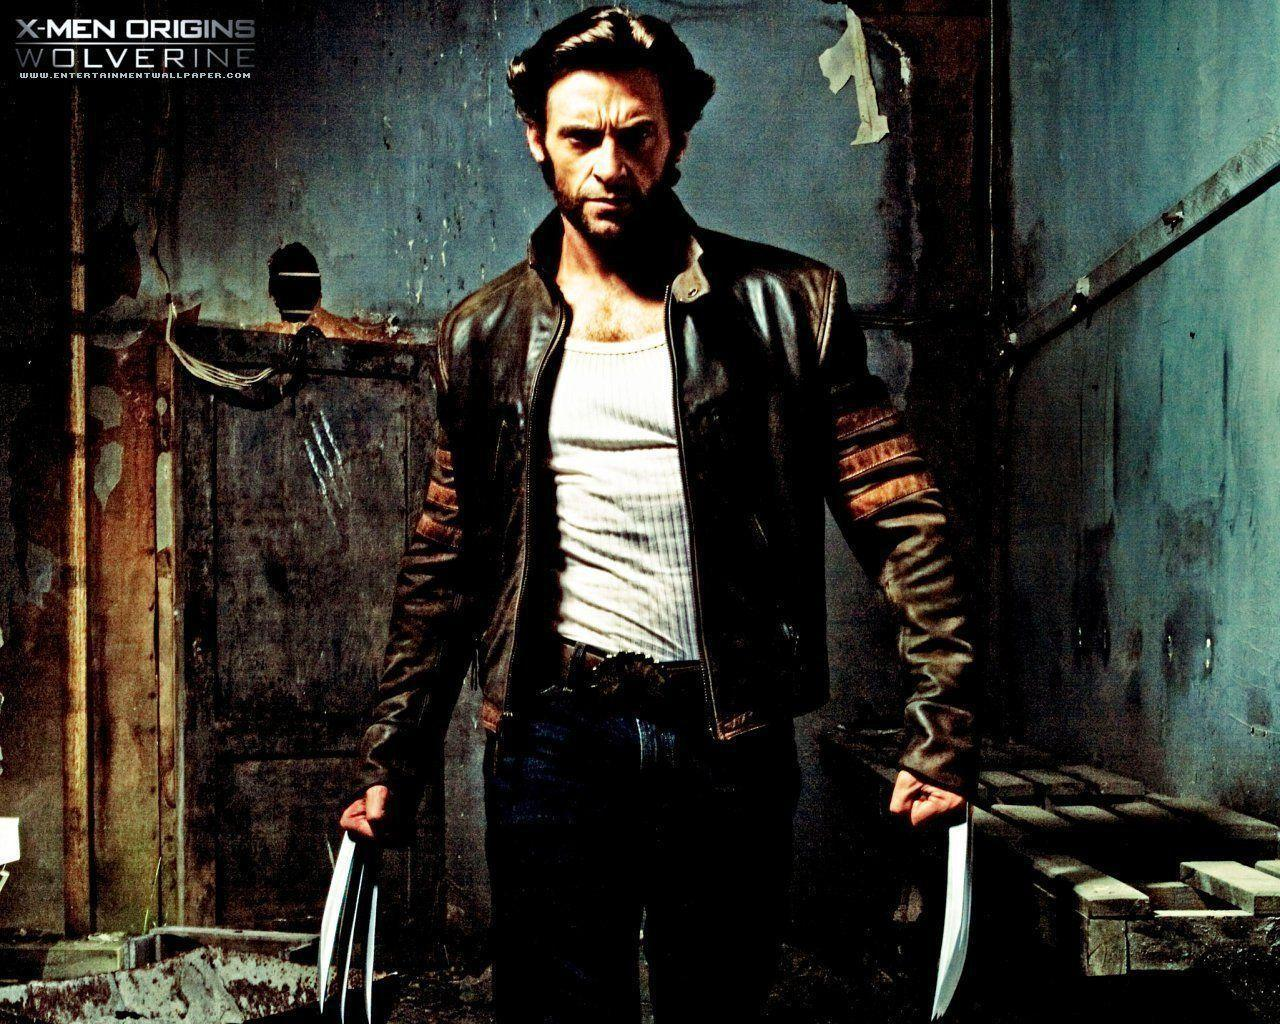 wolverine hd wallpapers - photo #29